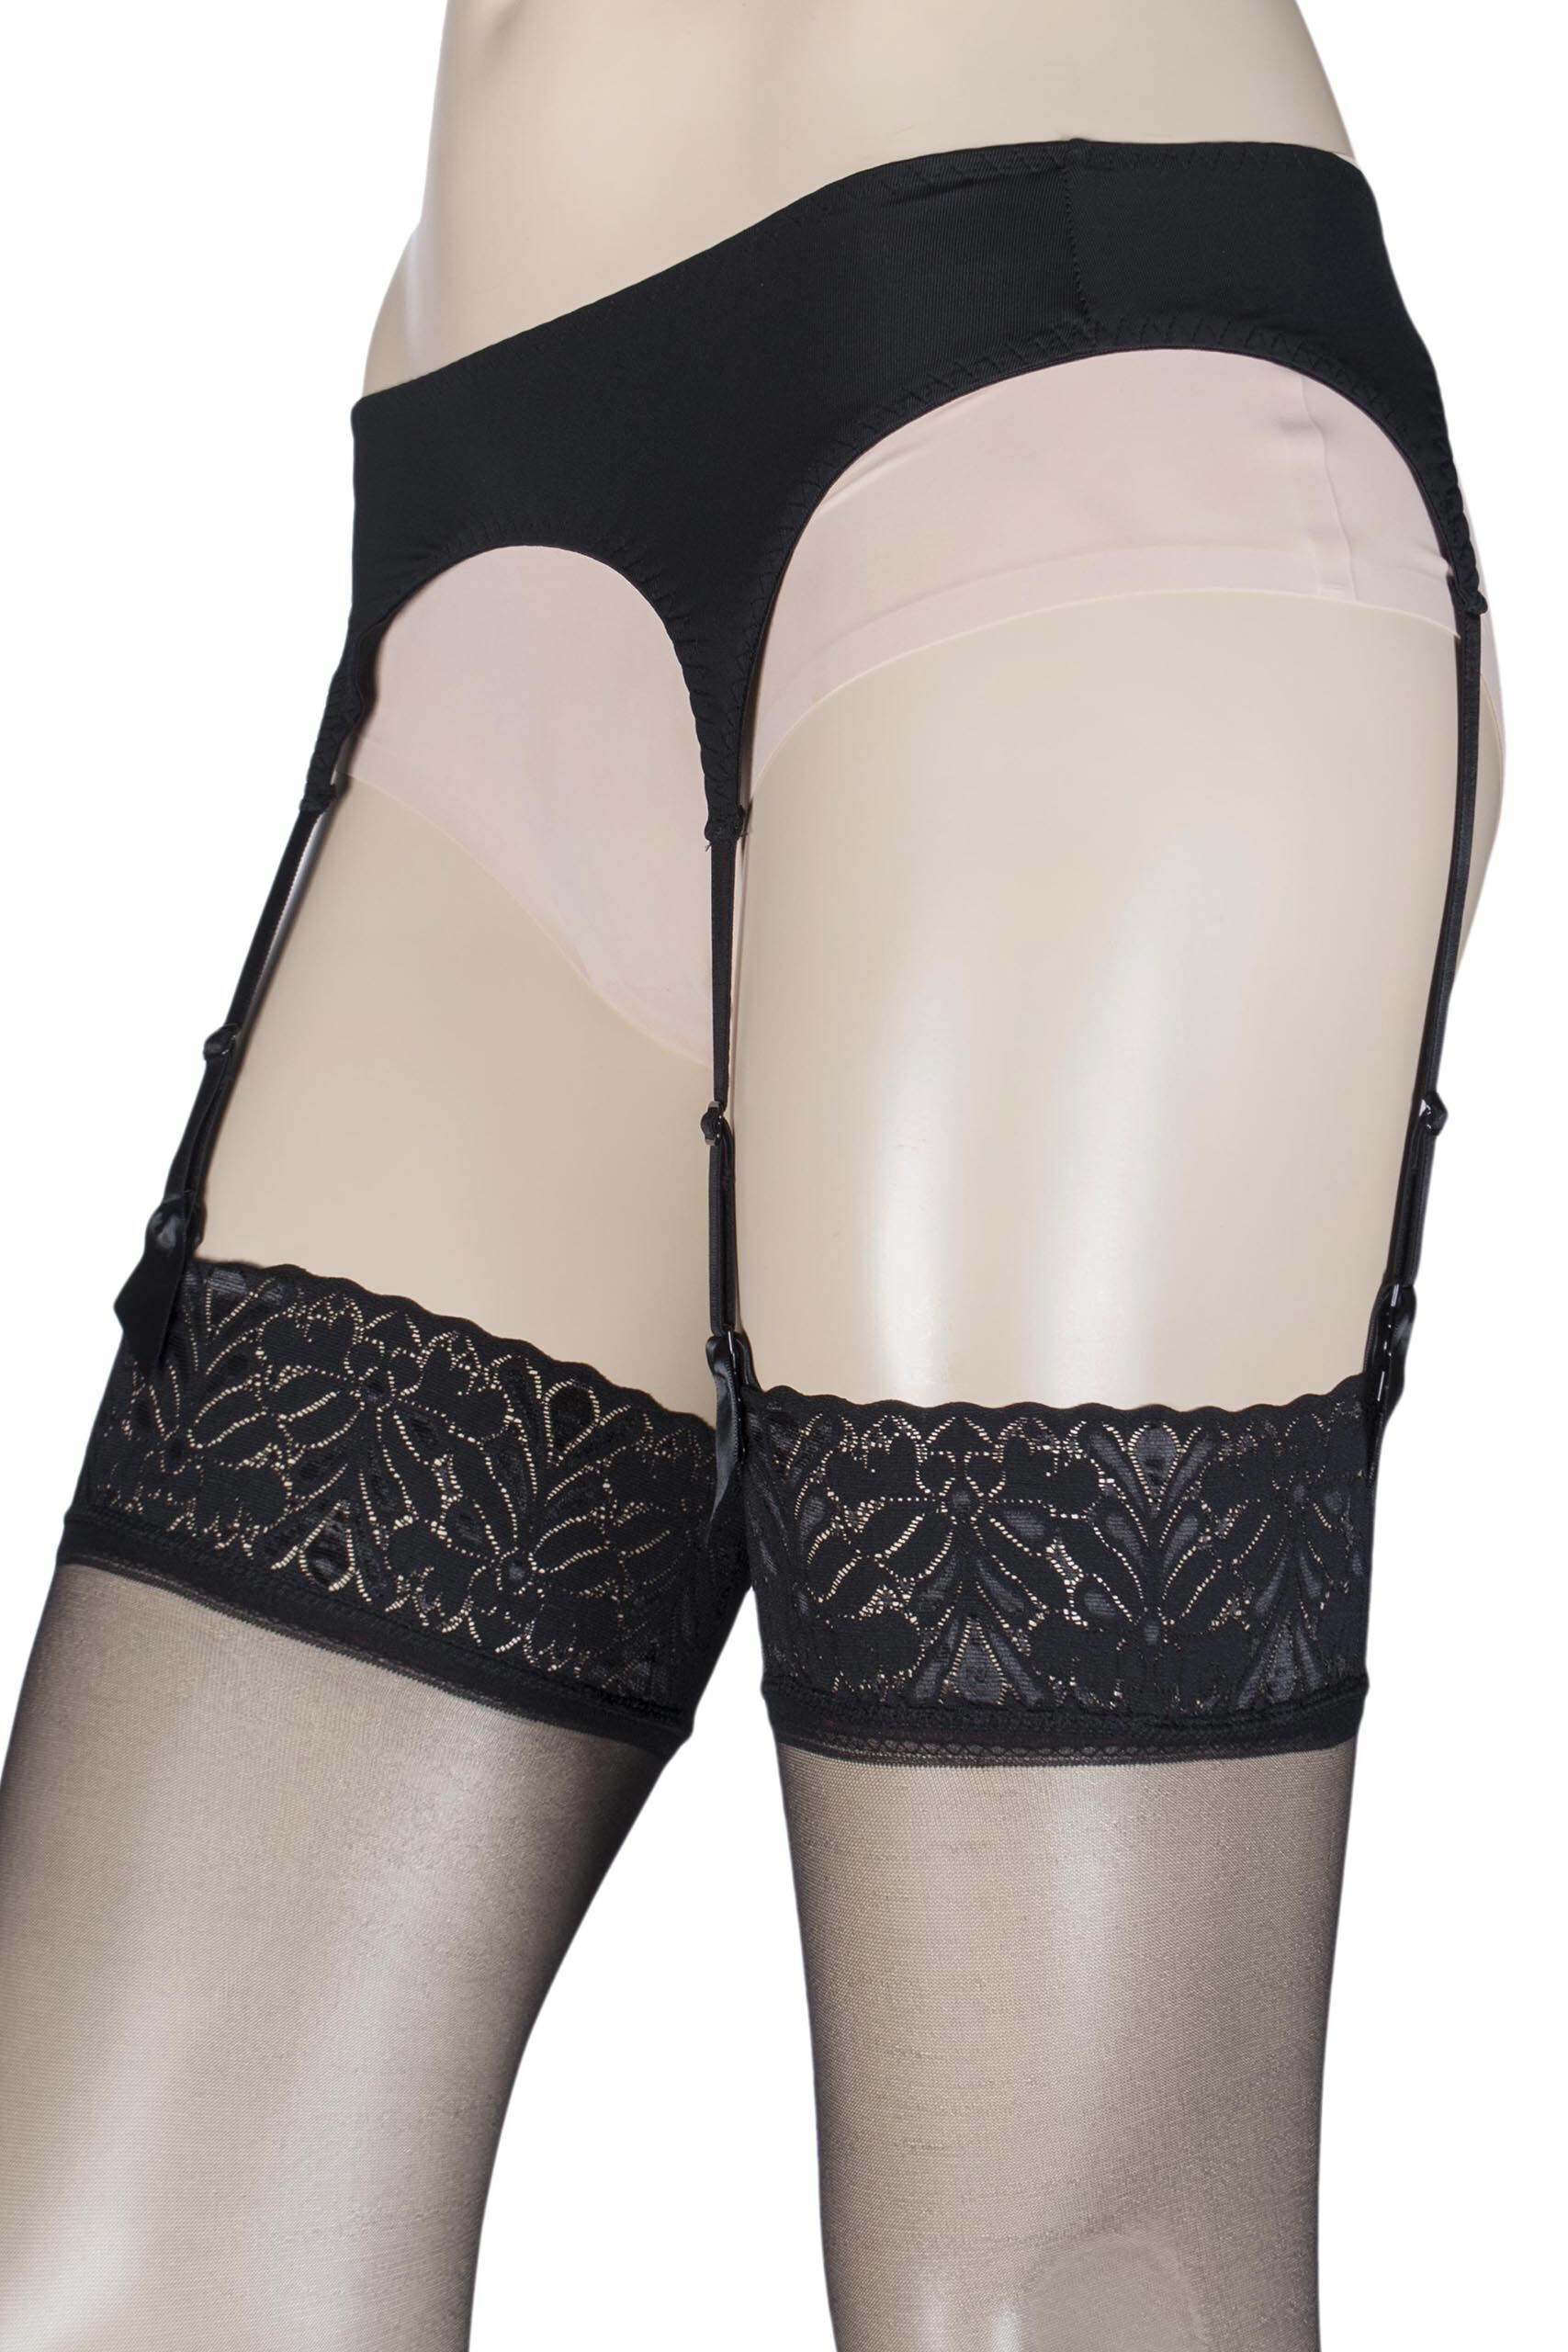 Image of 1 Pack Black Suspender Belt Ladies Medium/Large - Levante